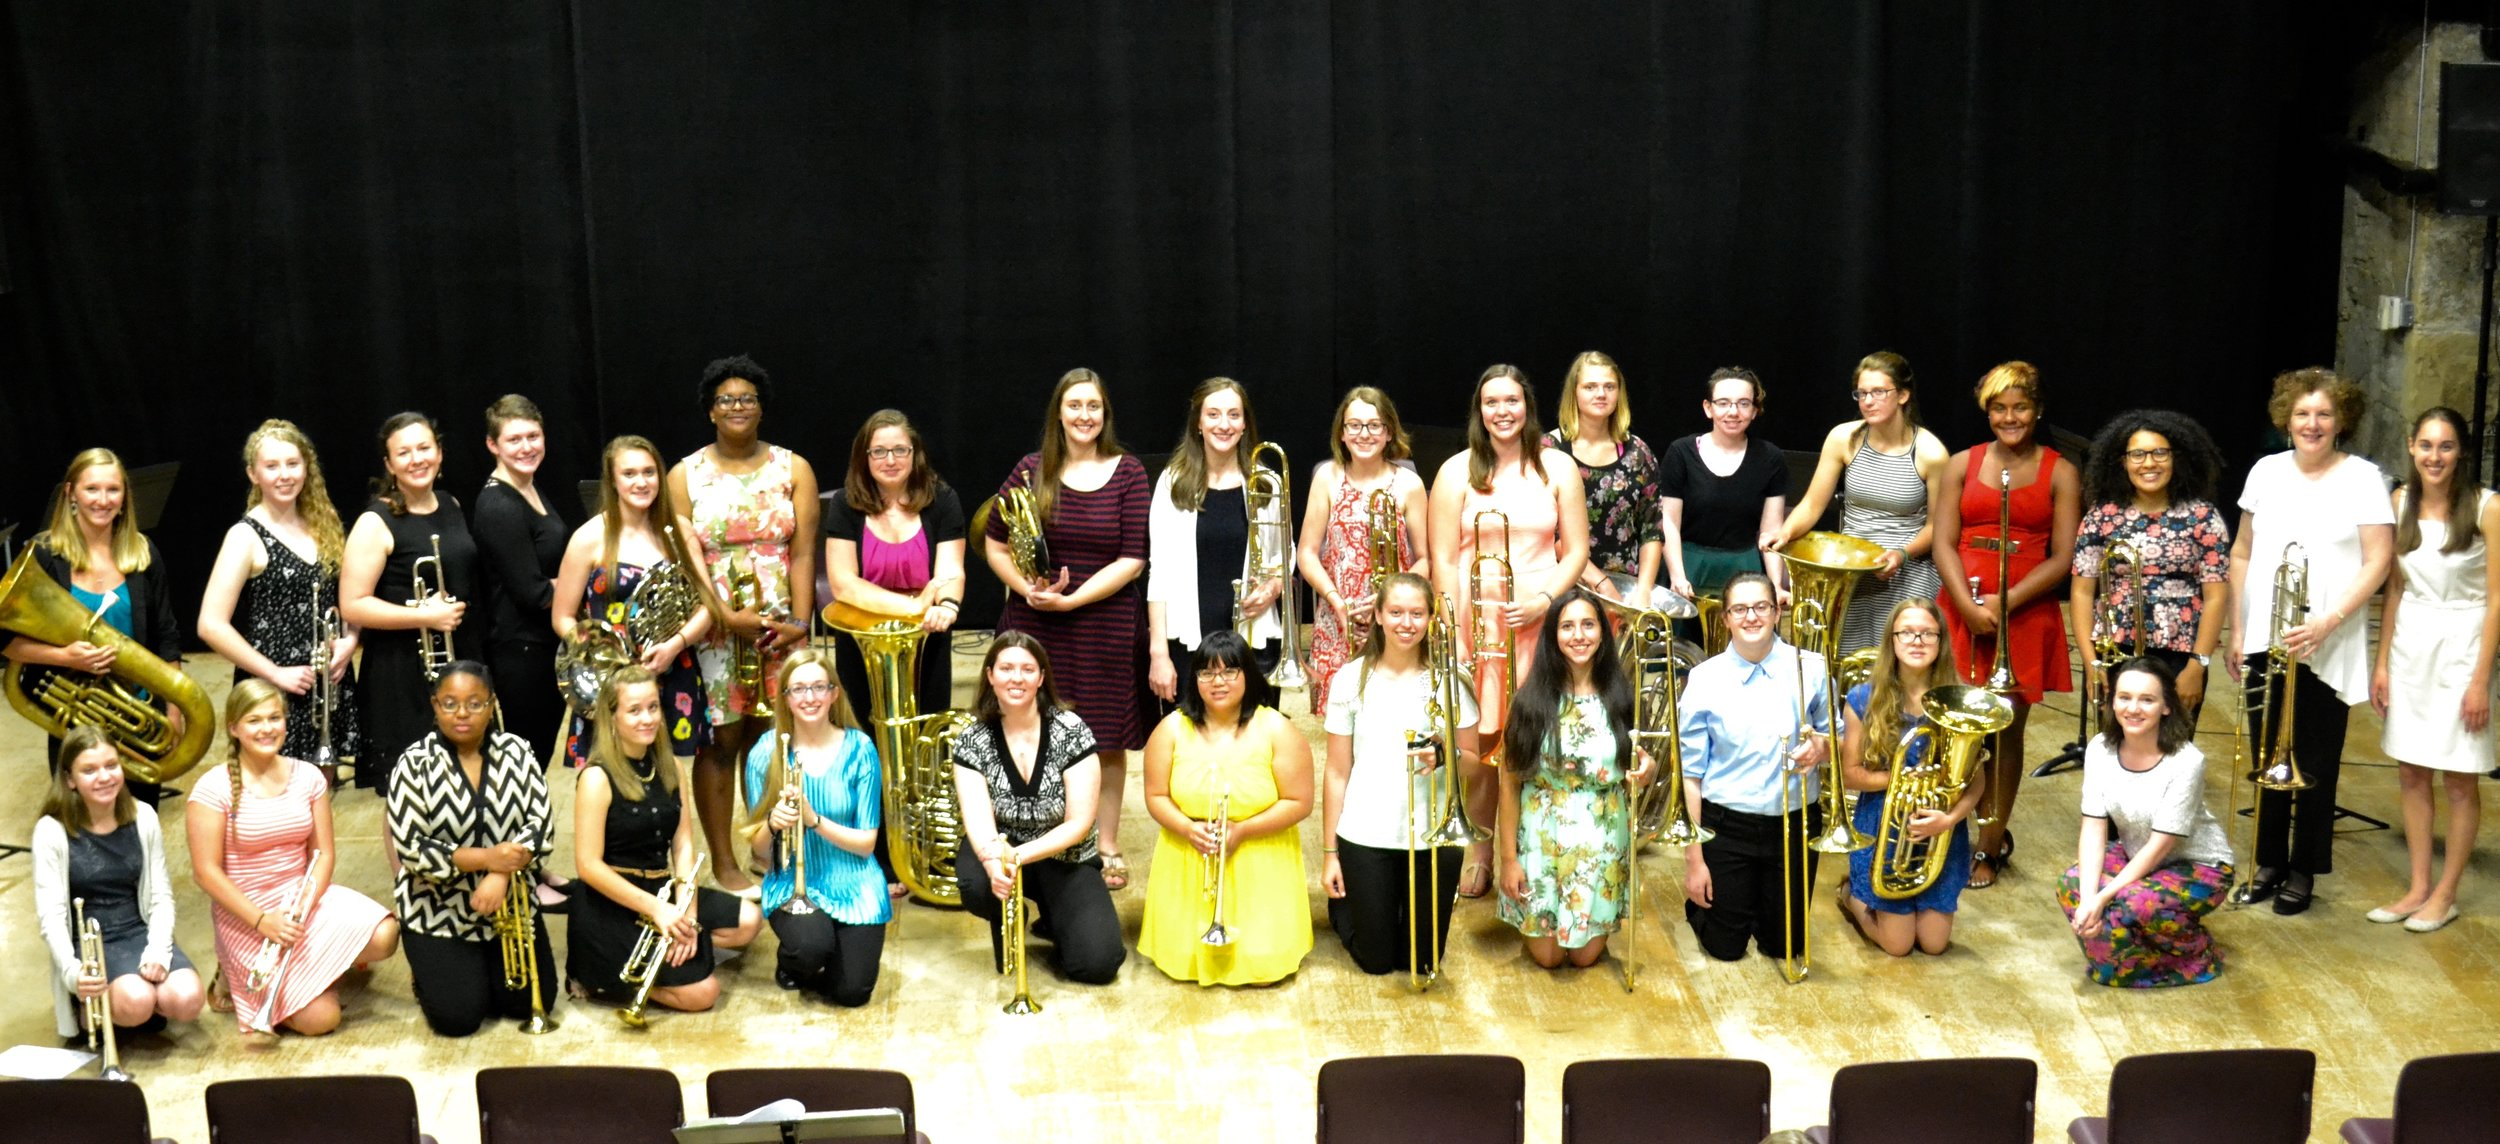 key of she brass concert pittsburgh